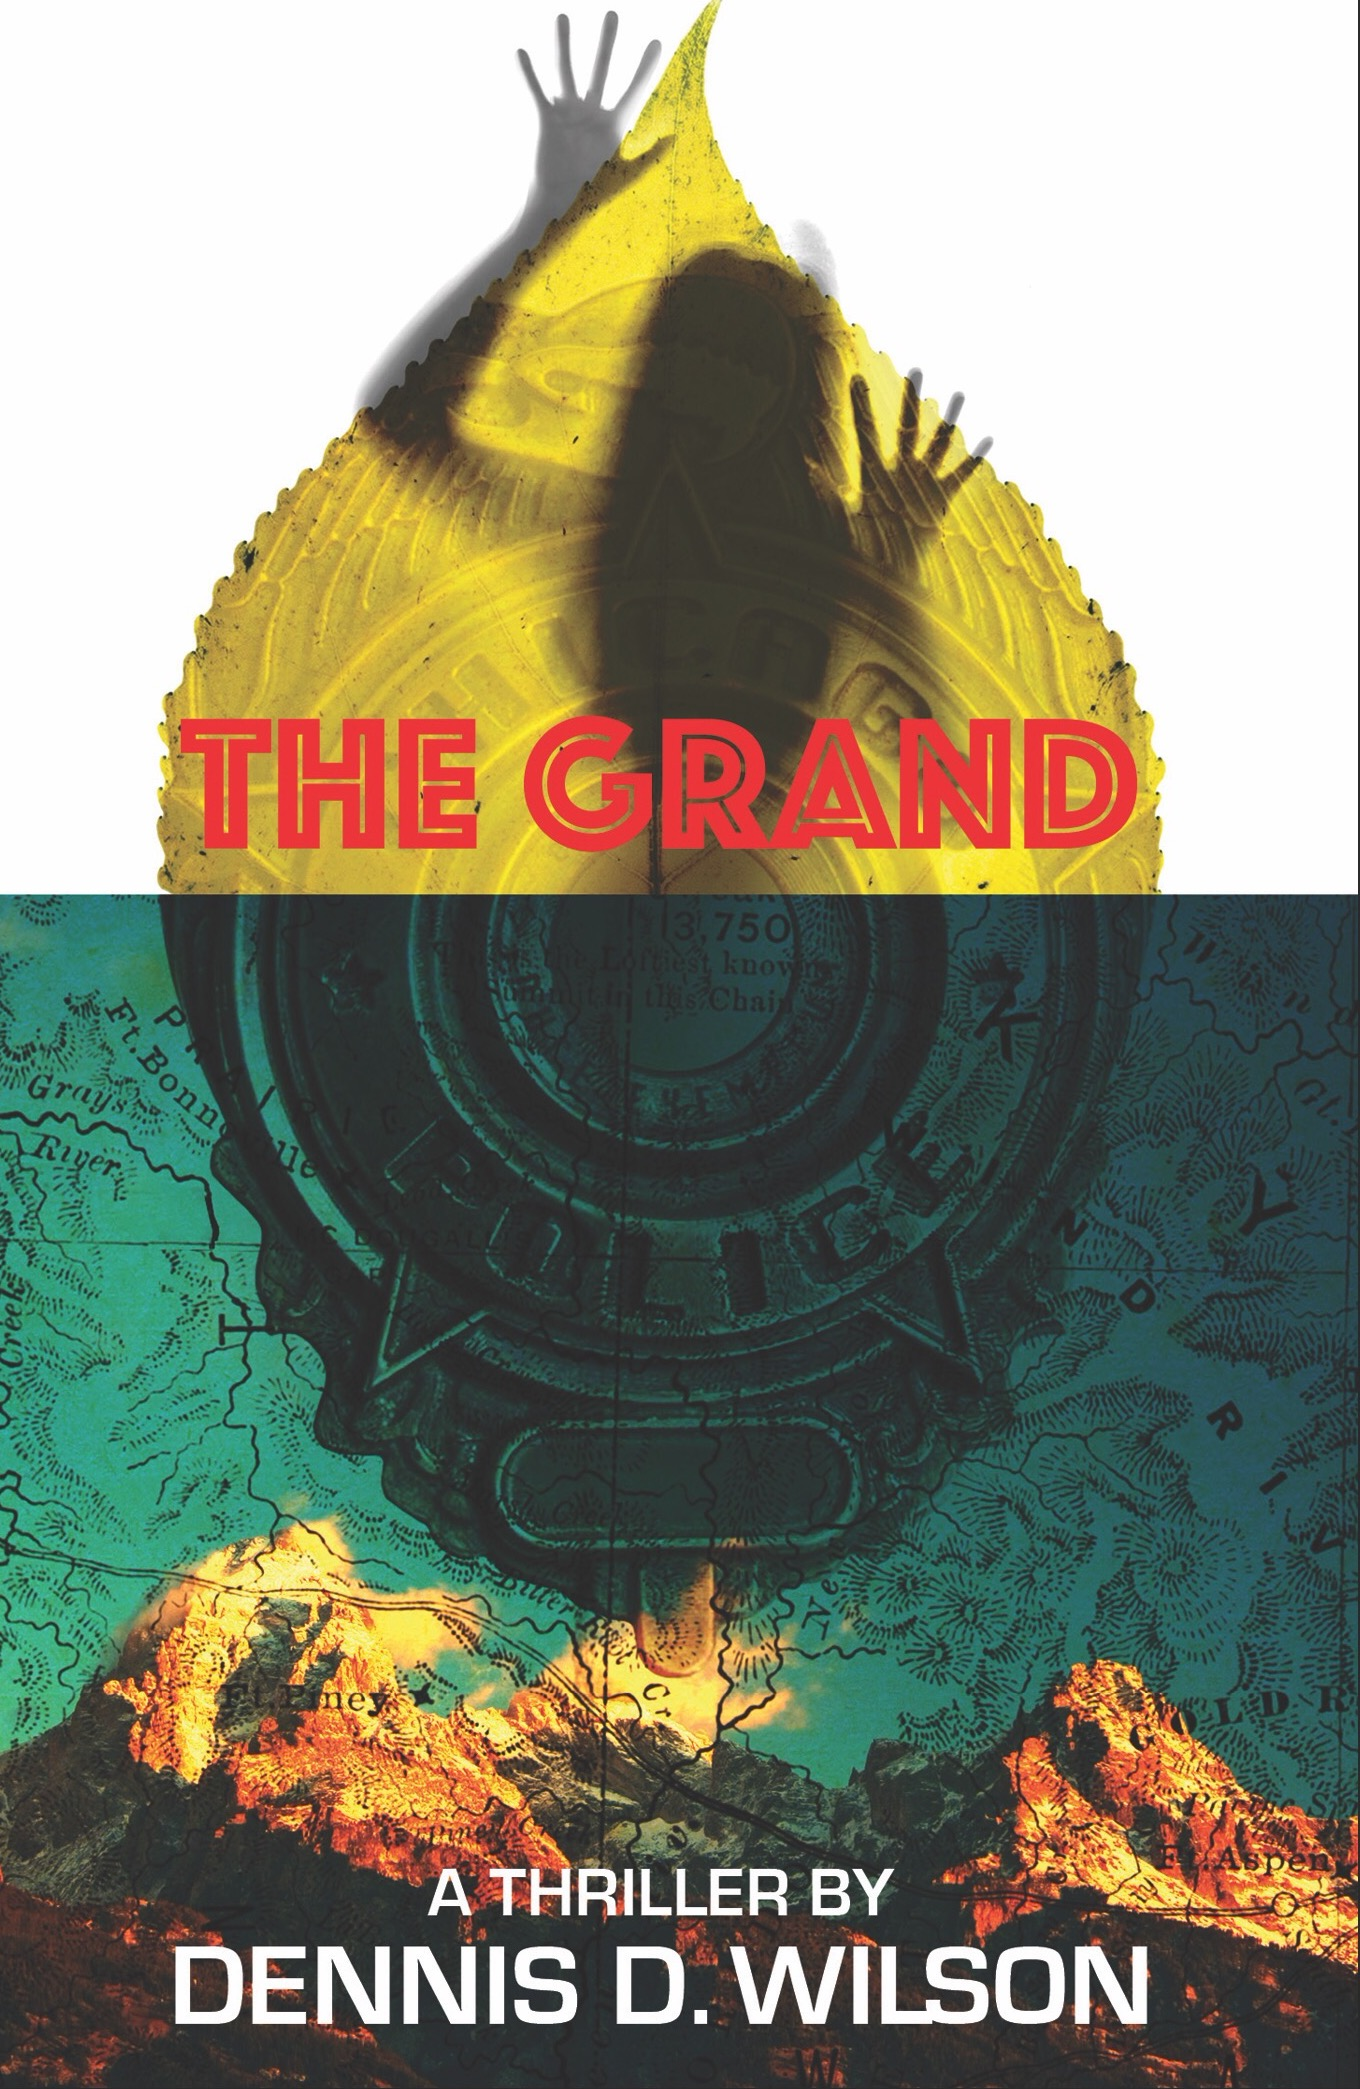 The Grand by Dennis D. Wilson – Showcase + Giveaway